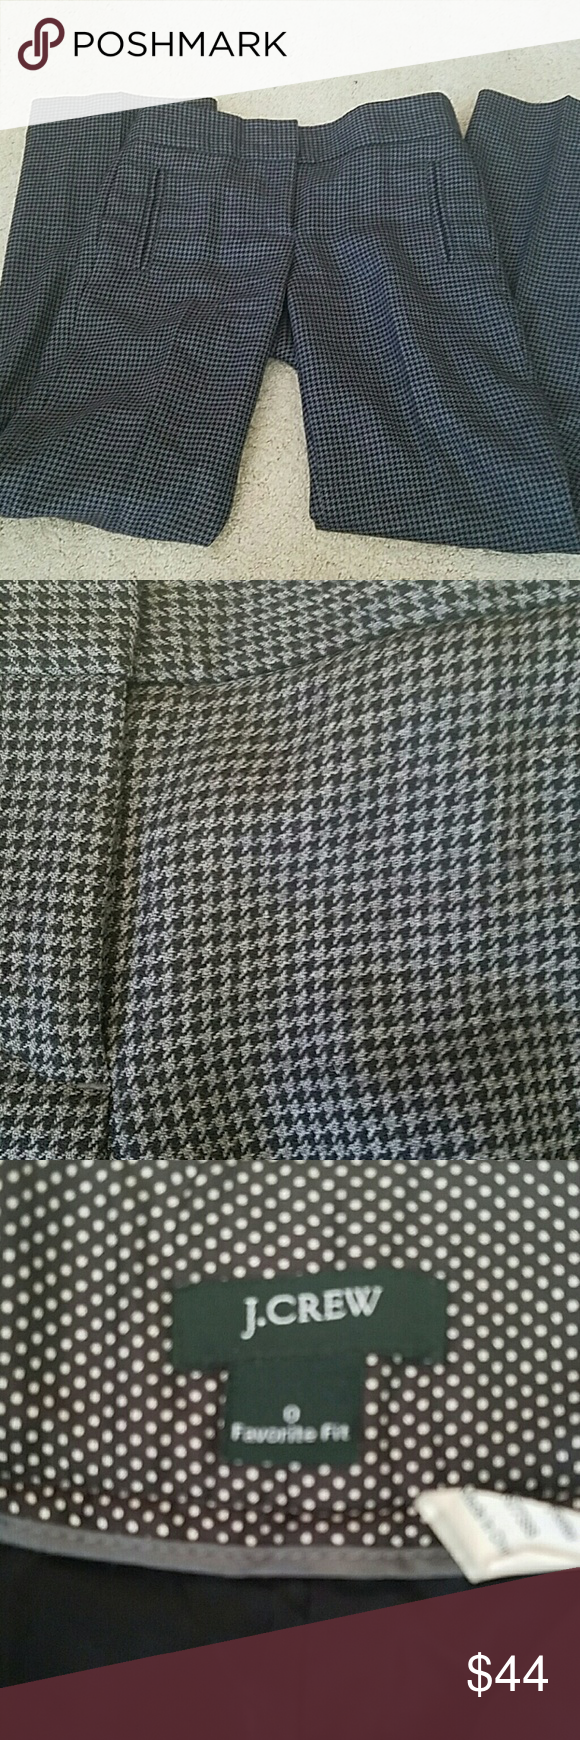 """J.crew wool gingham trousers sz0 Perfect condition, lined, classic! A bit too short on me. 15"""" waist 32""""inseam. J. Crew Pants Boot Cut & Flare"""